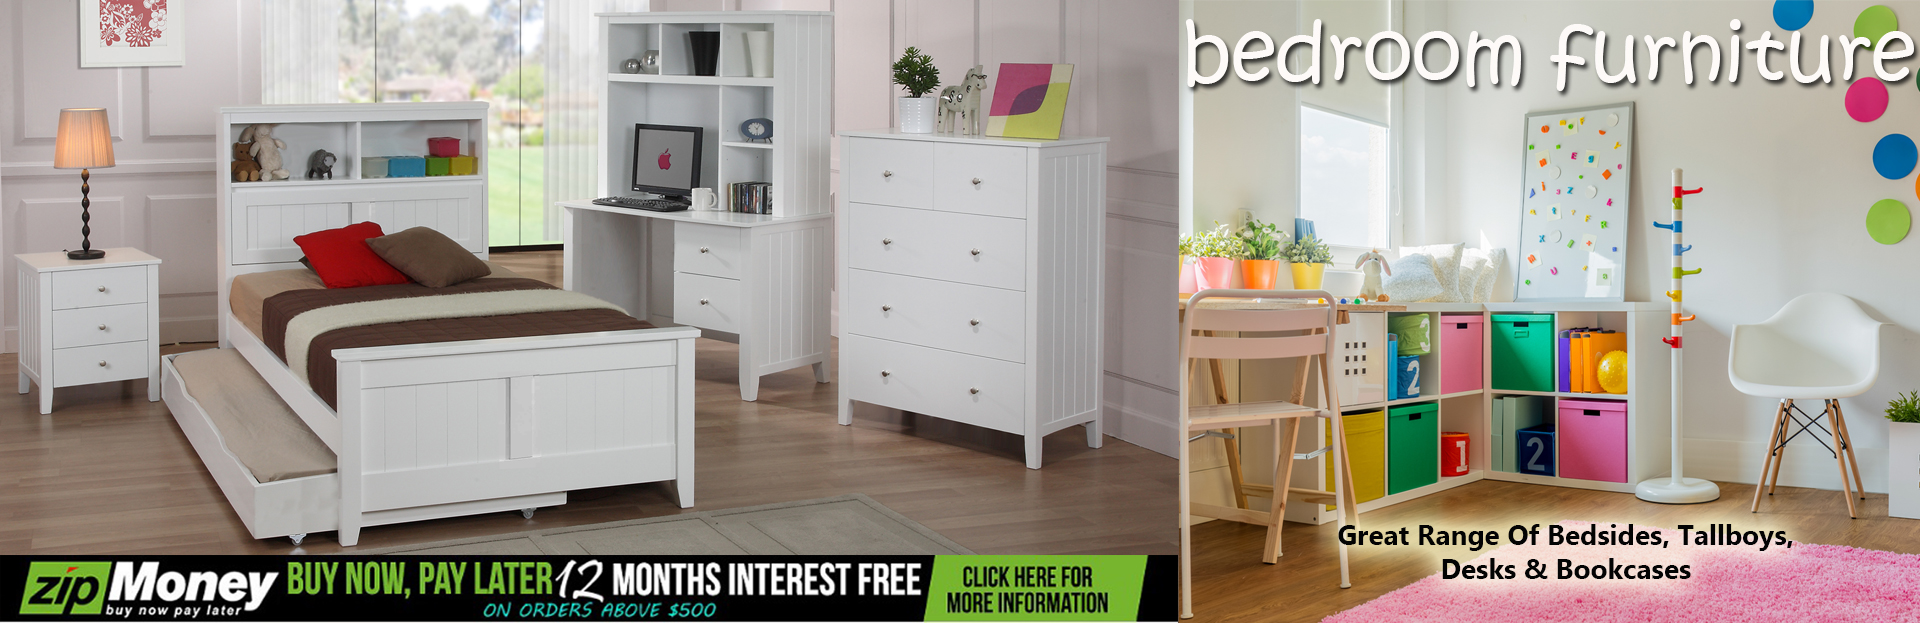 kids bedroom furniture, kids bedrooms furniture sydney & melbourne